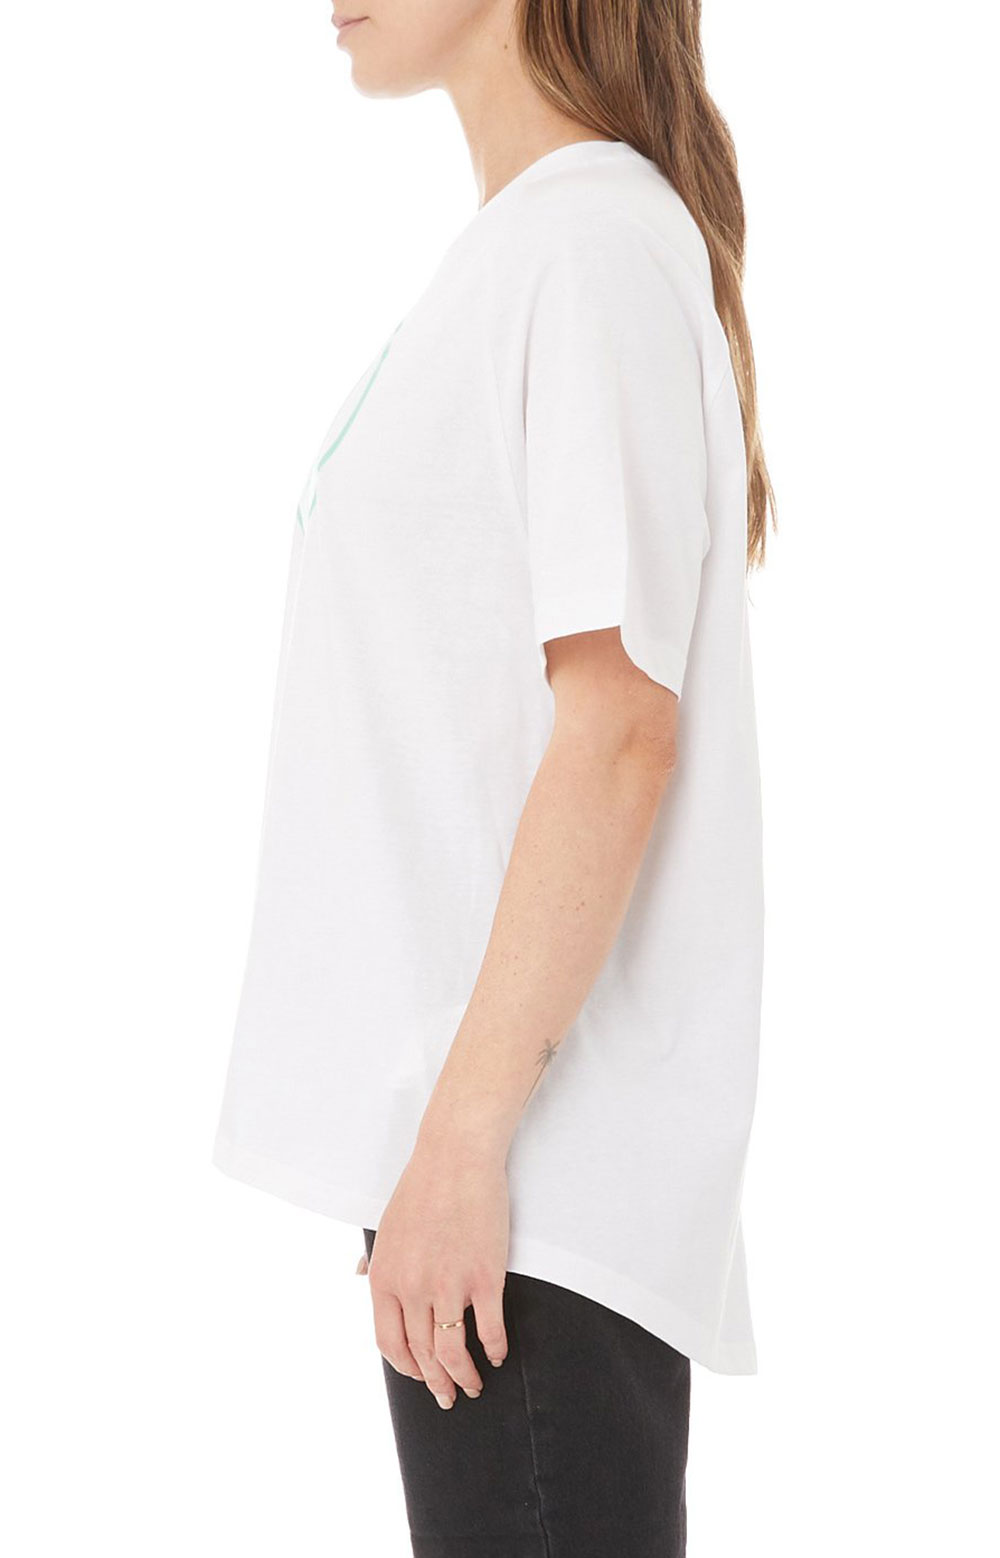 Authentic Pop Emasar Top - White/Green Spring  3